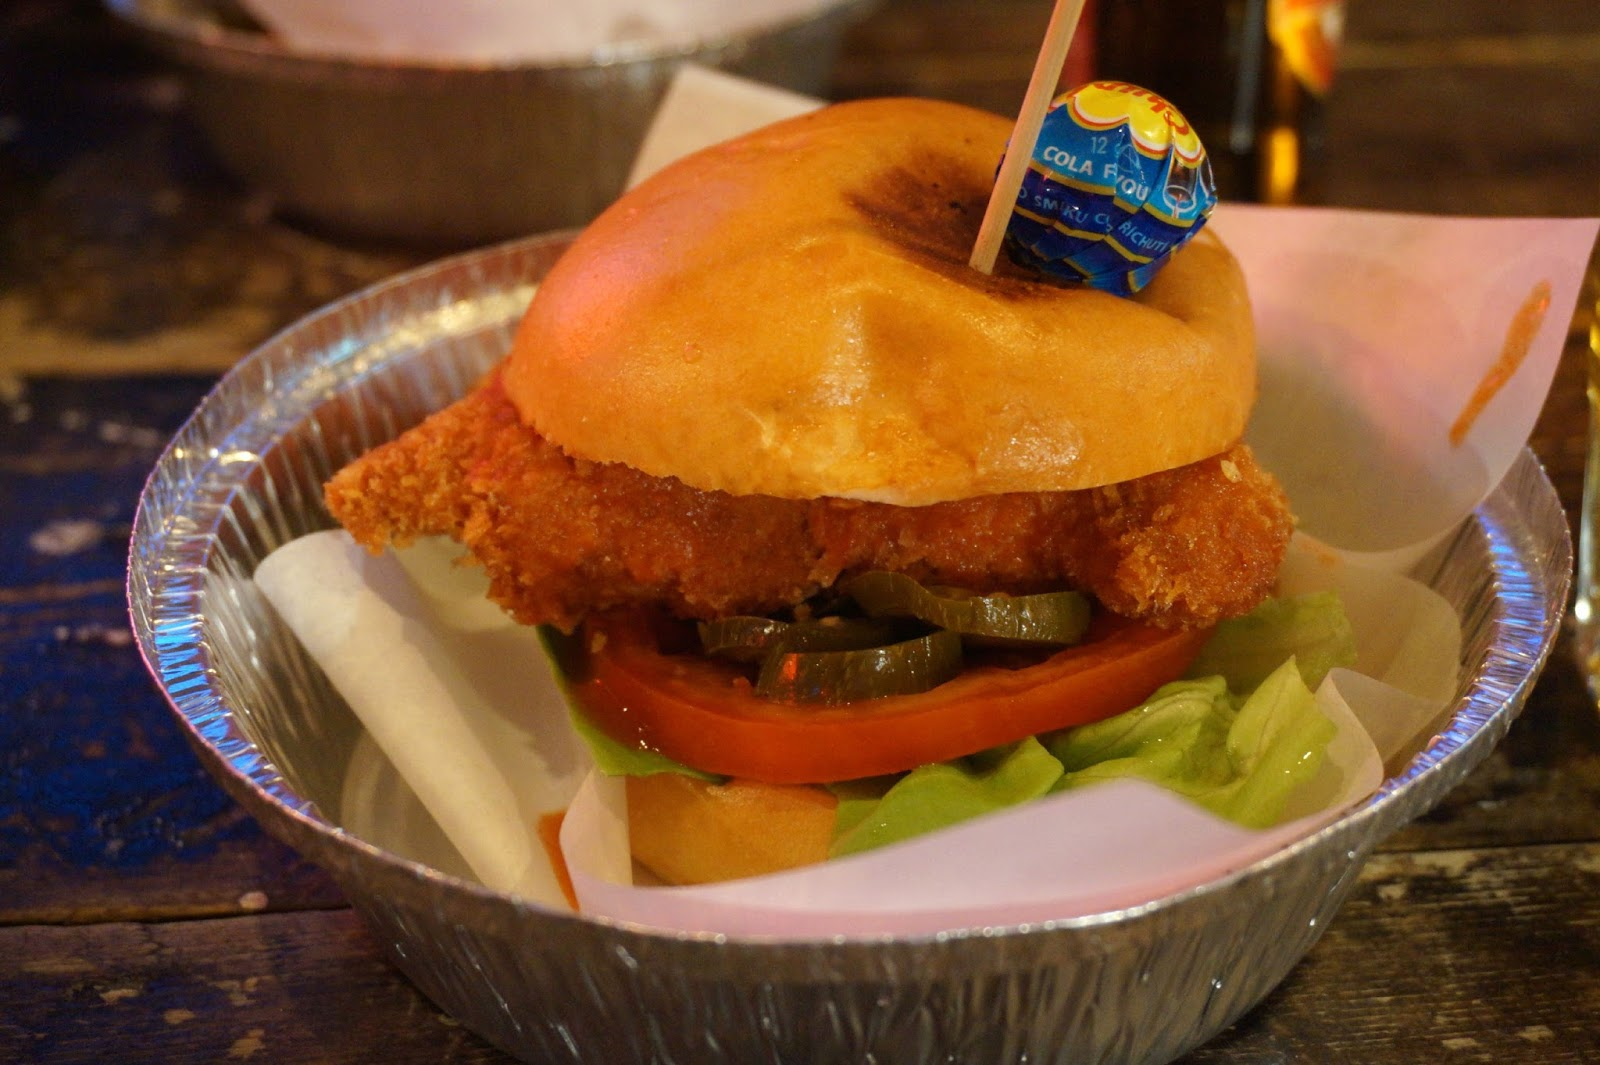 crunchy fried chicken breast burger smothered in hot buffalo sauce and pickles